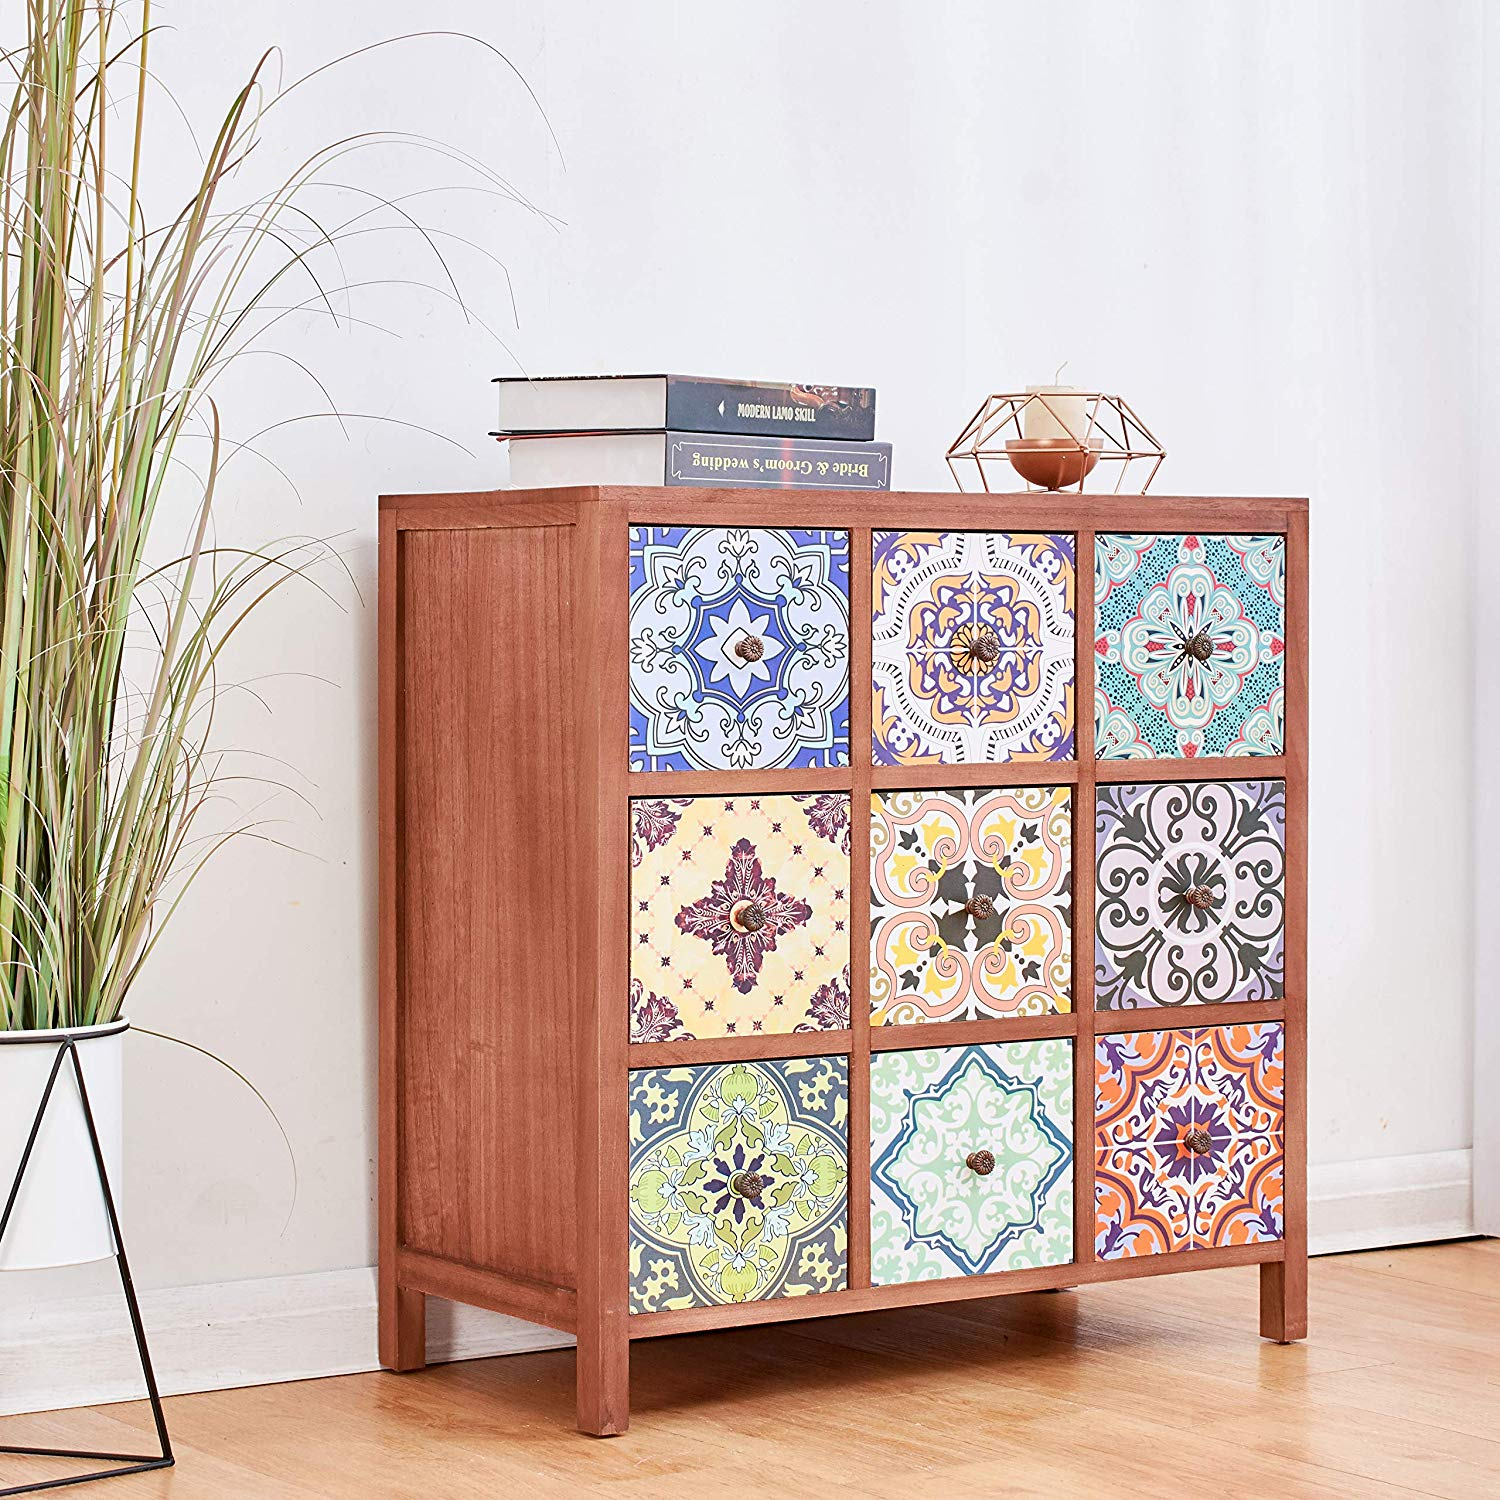 Cherry Tree Furniture Ostia 9-Drawer Multi-Coloured Wooden Cabinet Chest of Drawers